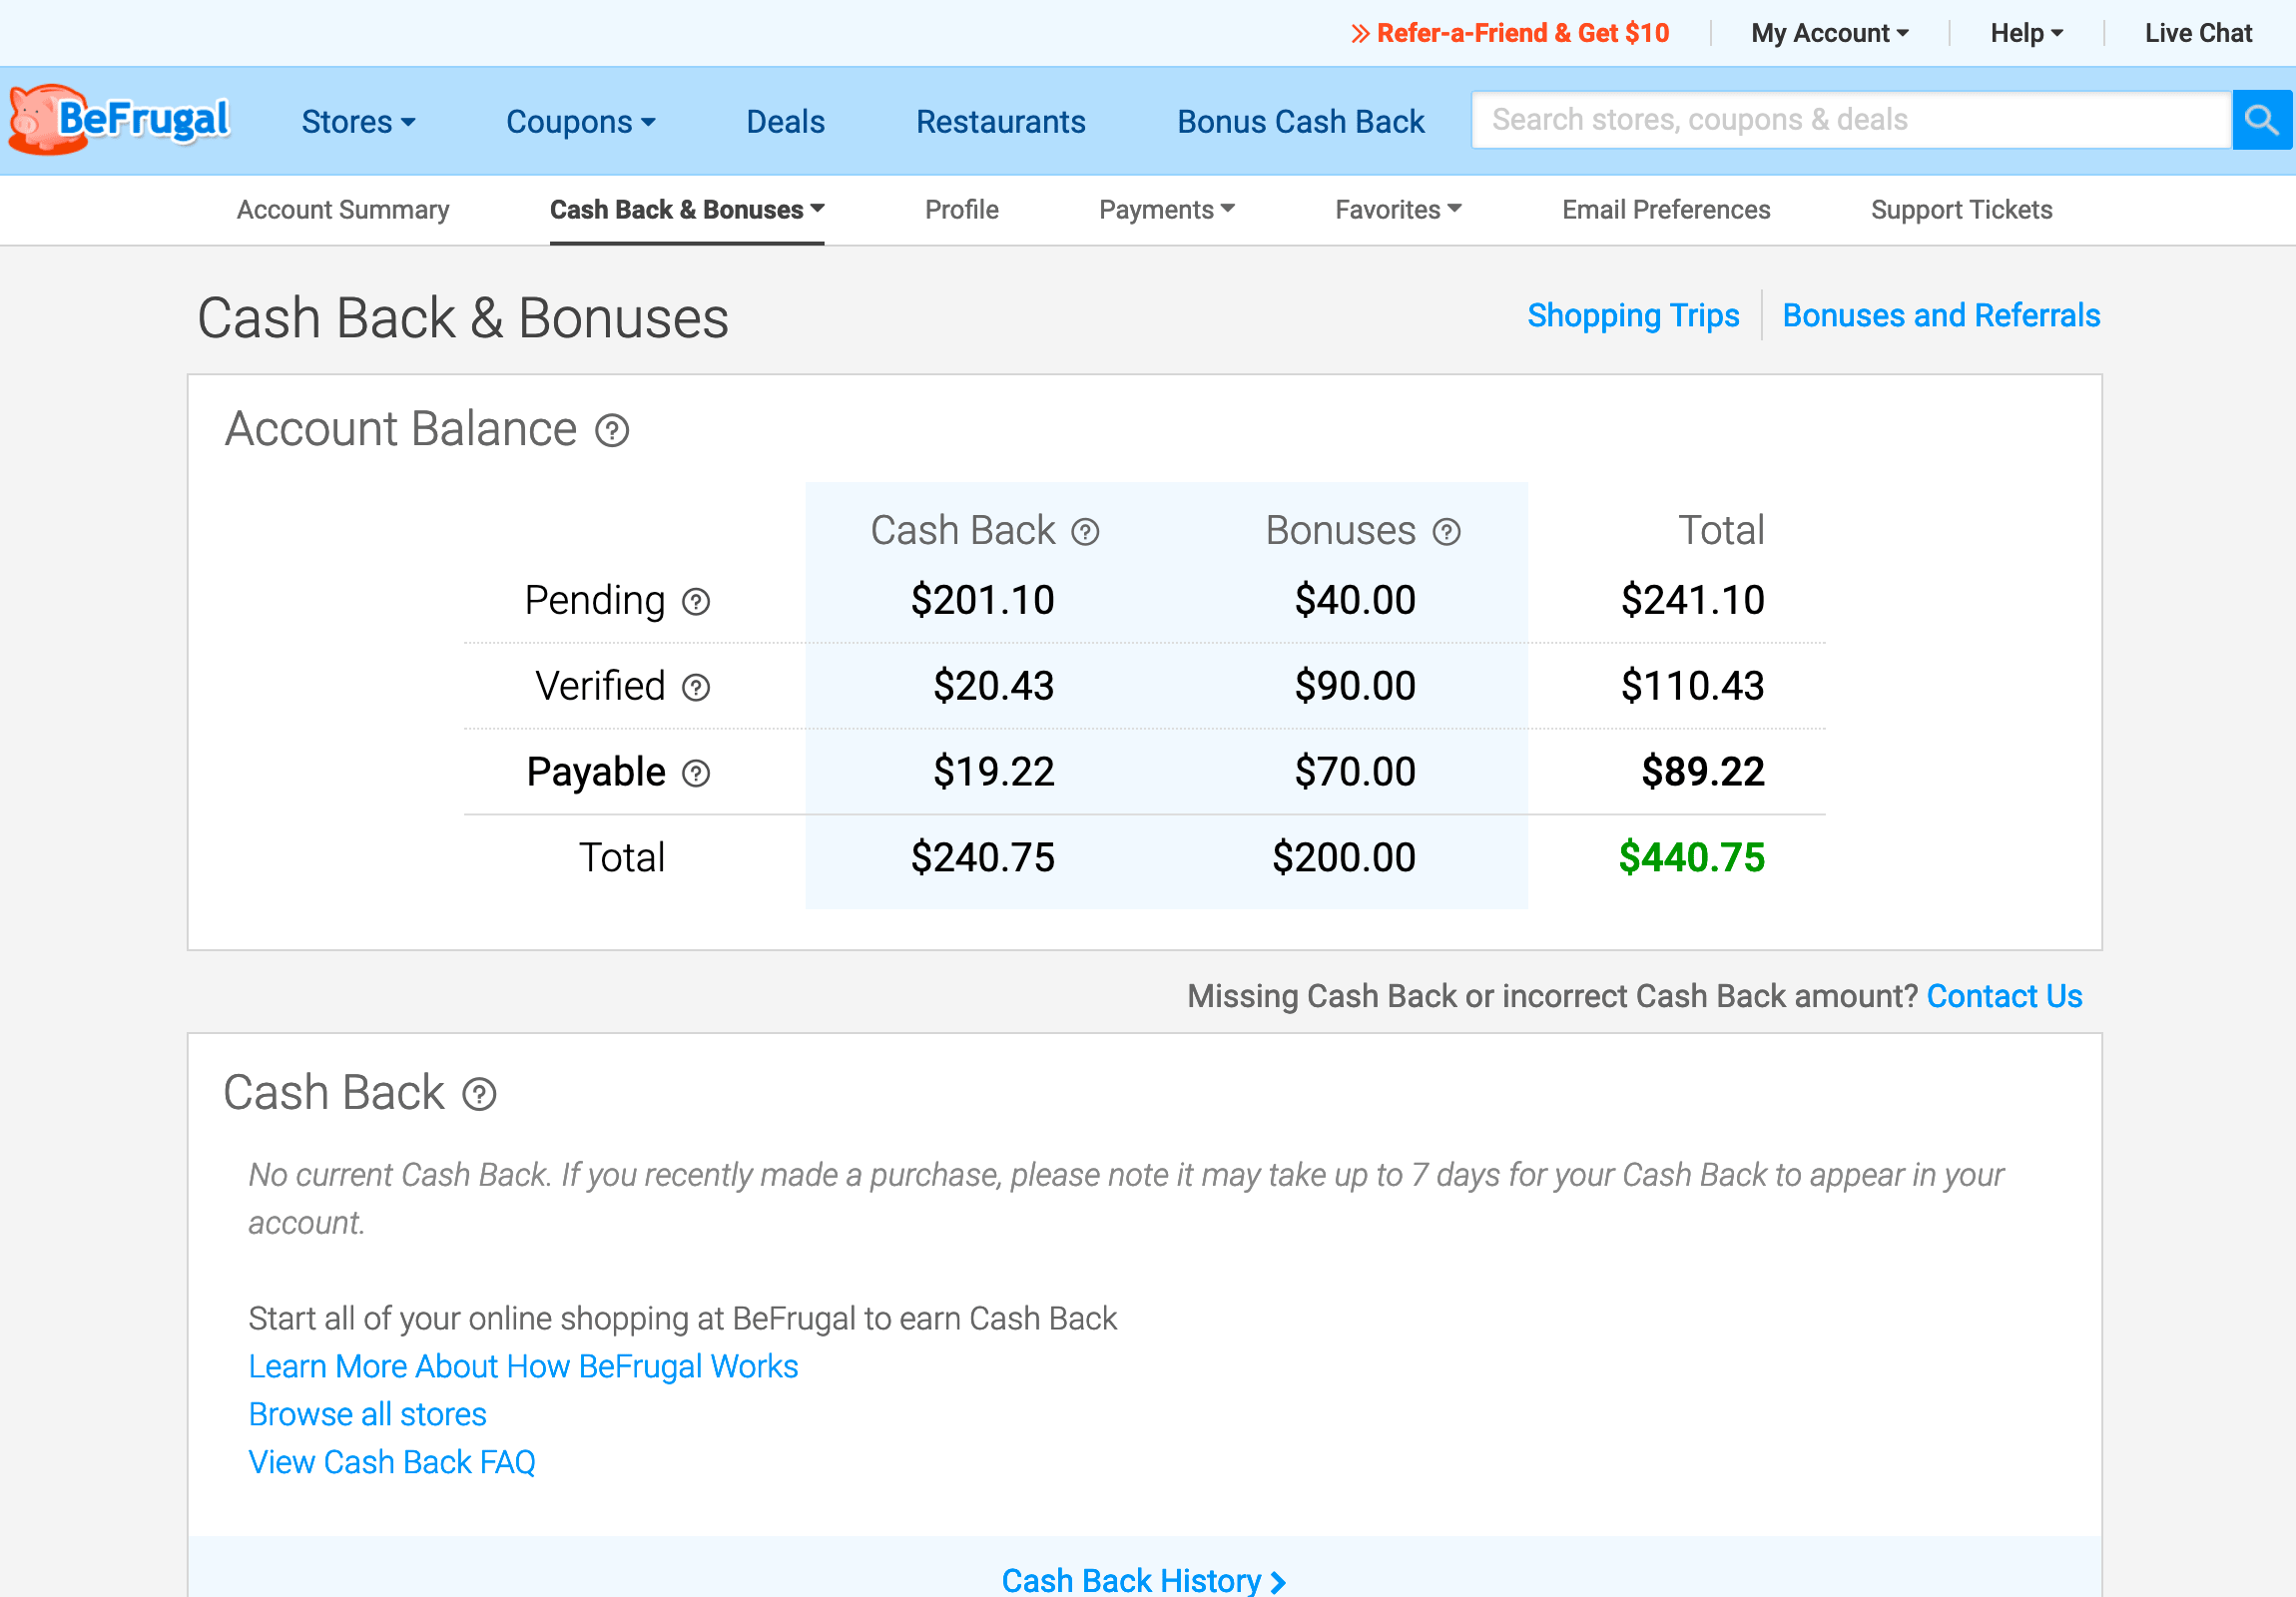 My balance on BeFrugal.com